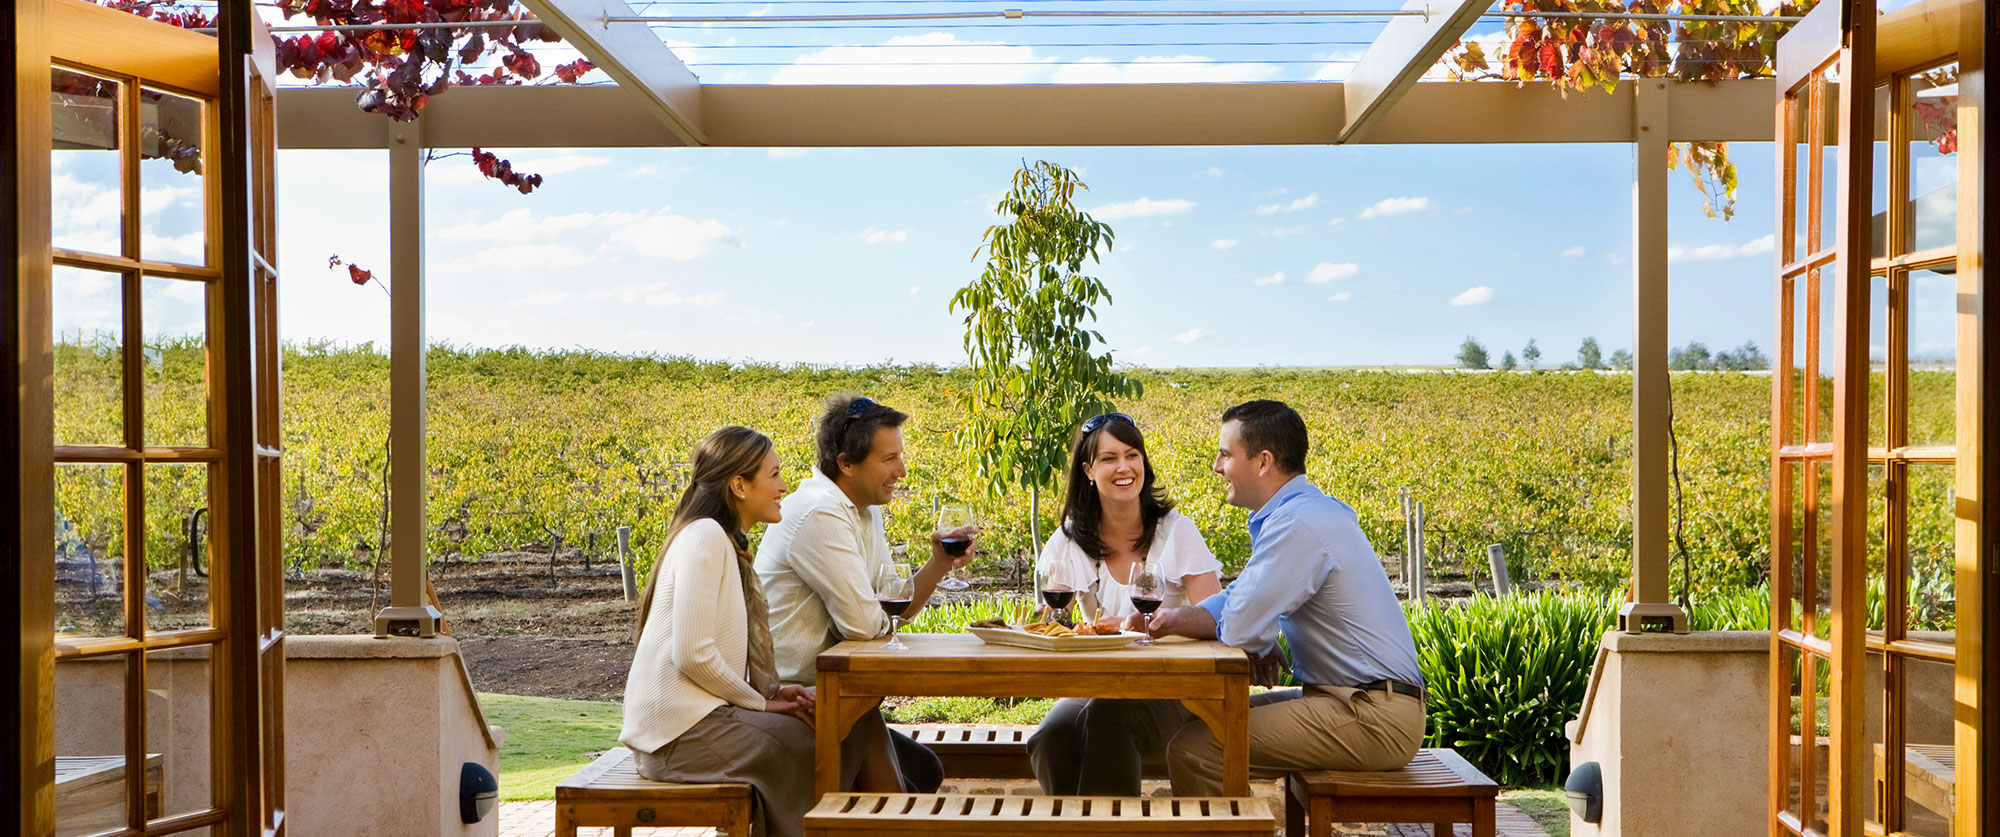 South Australia Luxury Travel: Exclusive Resorts, Wildlife and Cuisine - Barossa Valley